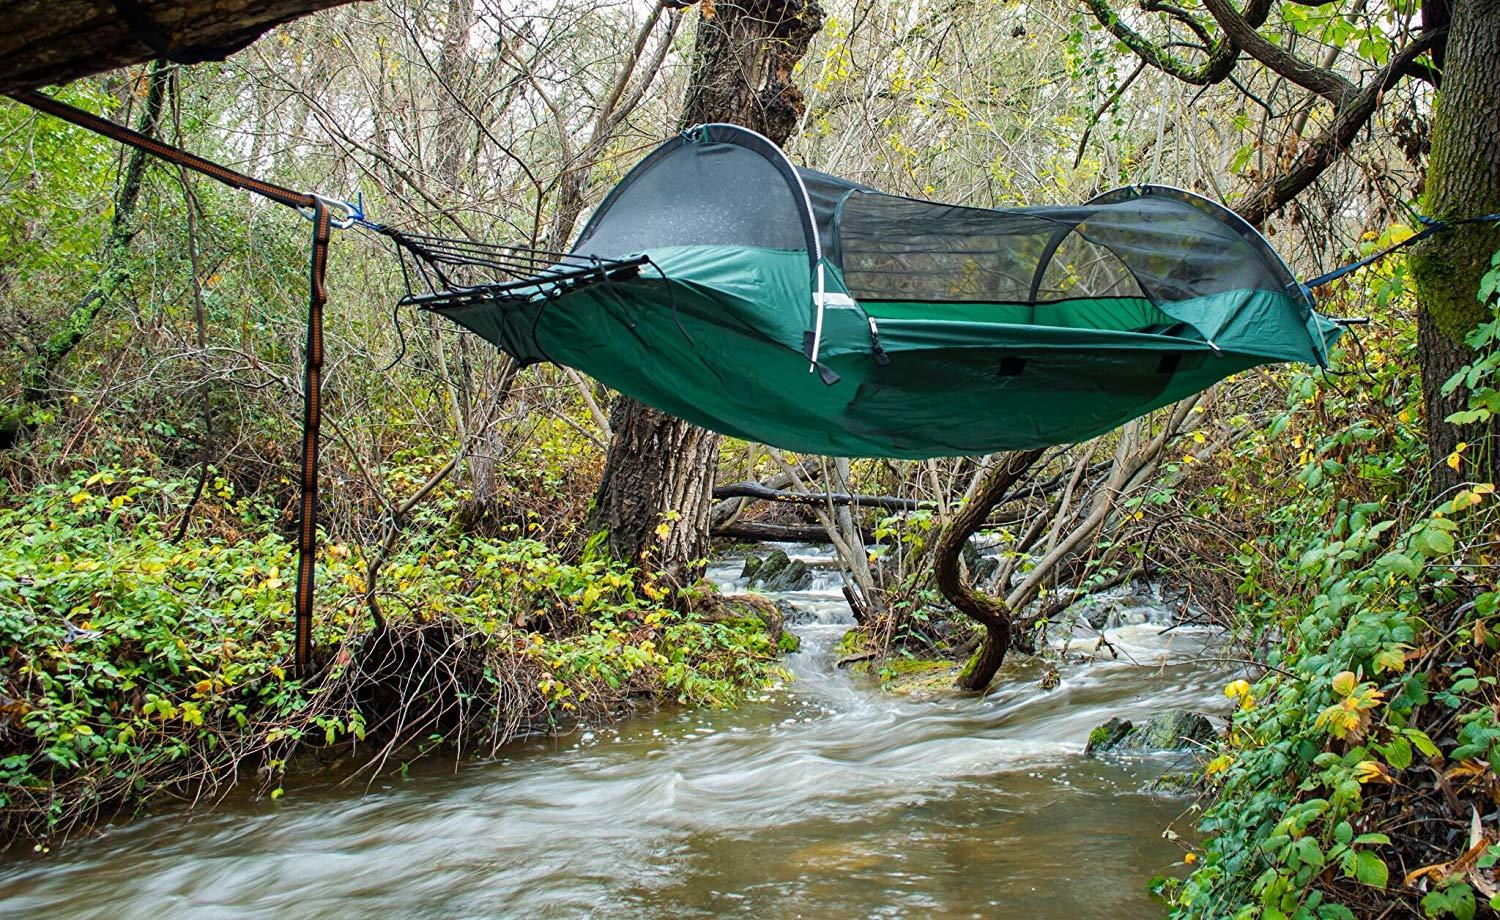 Lawson Hammock Blue Ridge Camping Hammock and Tent (Rainfly and Bug Net Included) 1